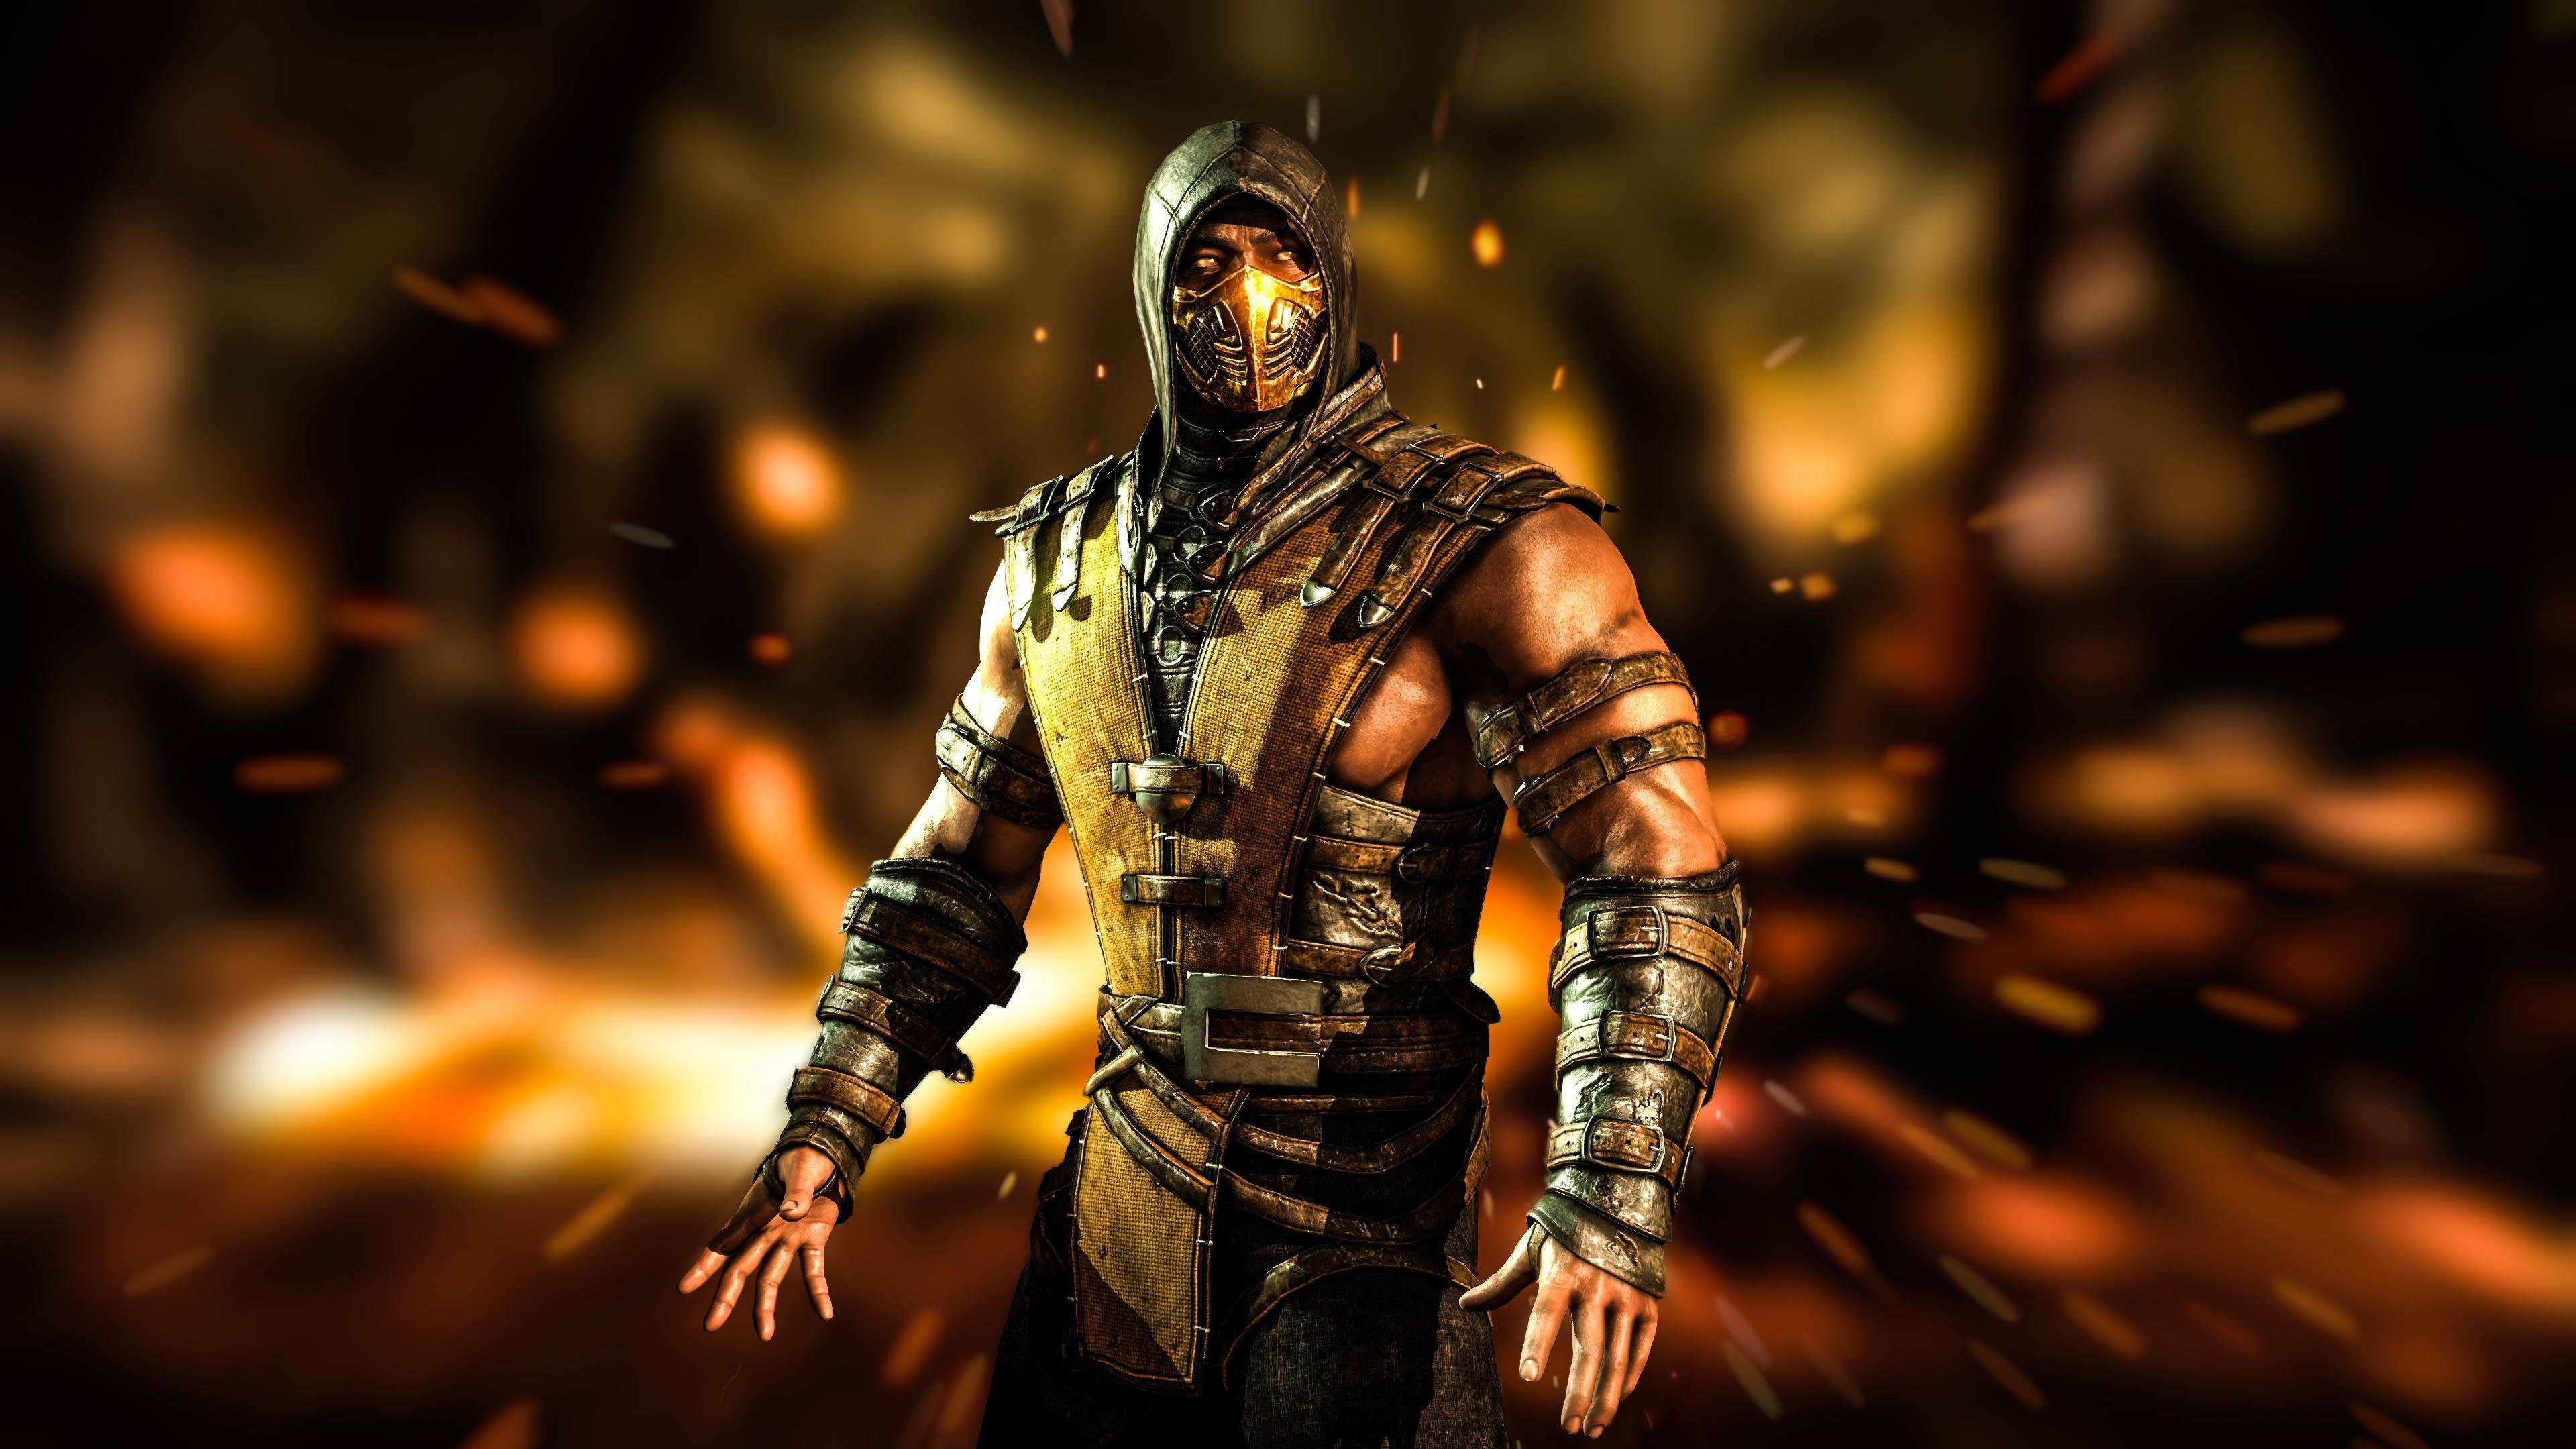 Mortal Kombat X Scorpion Wallpapers HD Desktop WIdescreen